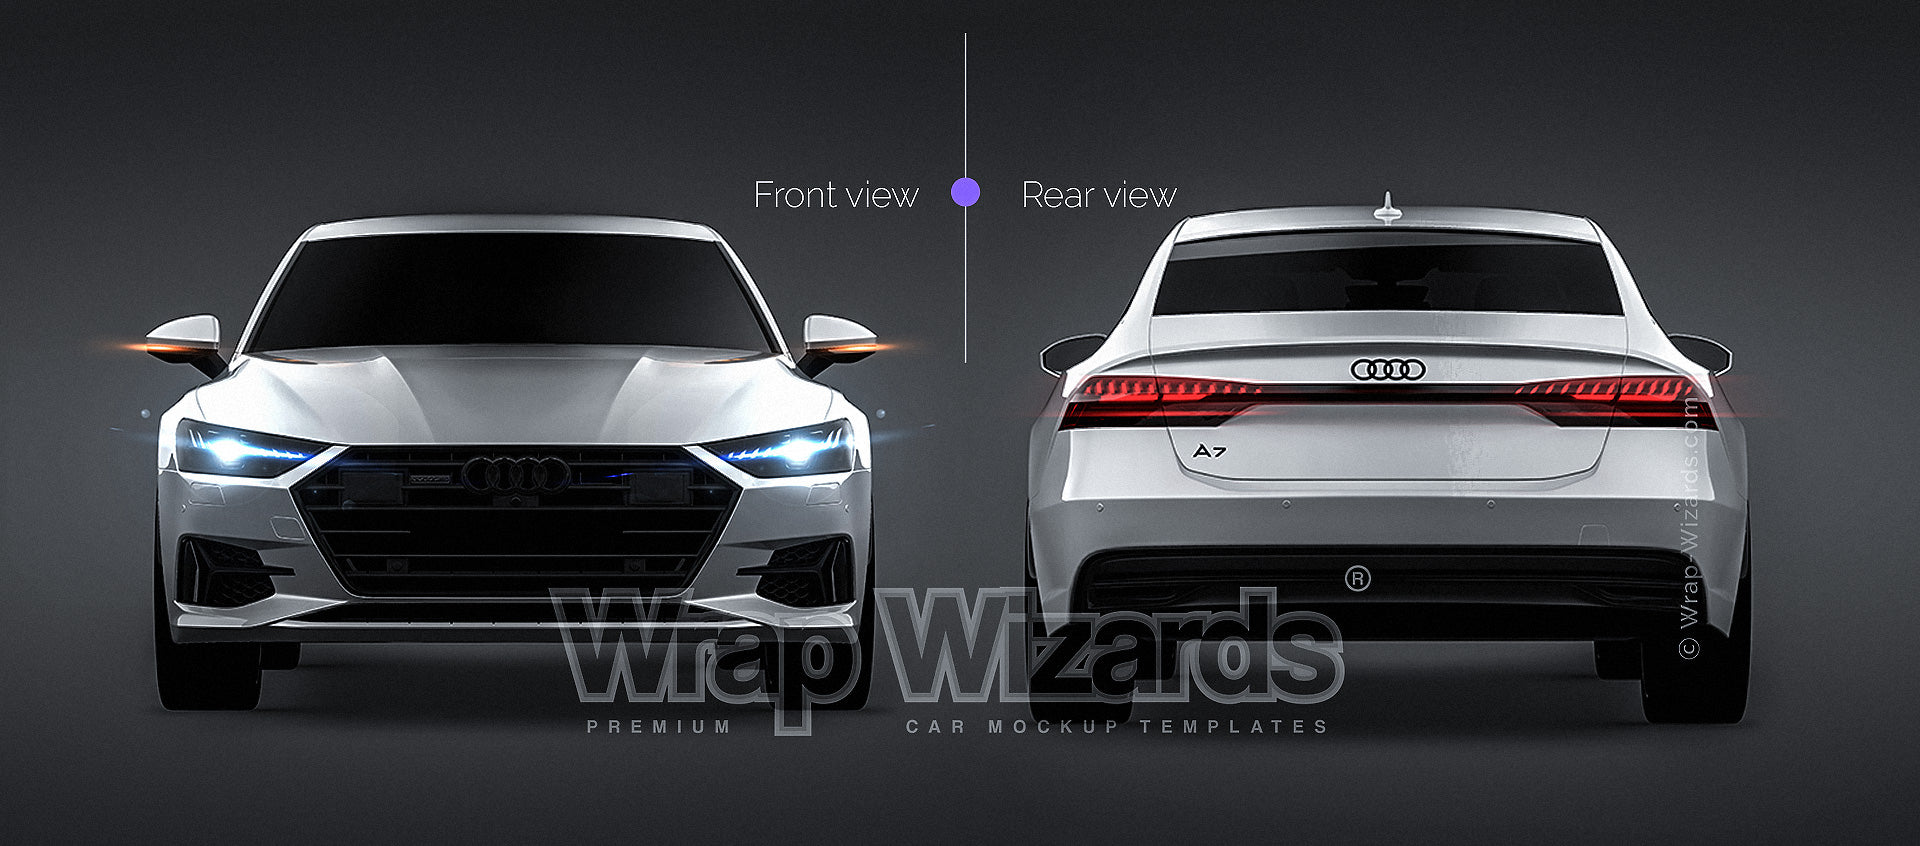 Audi A7 Sportback 2018 glossy finish - all sides Car Mockup Template.psd